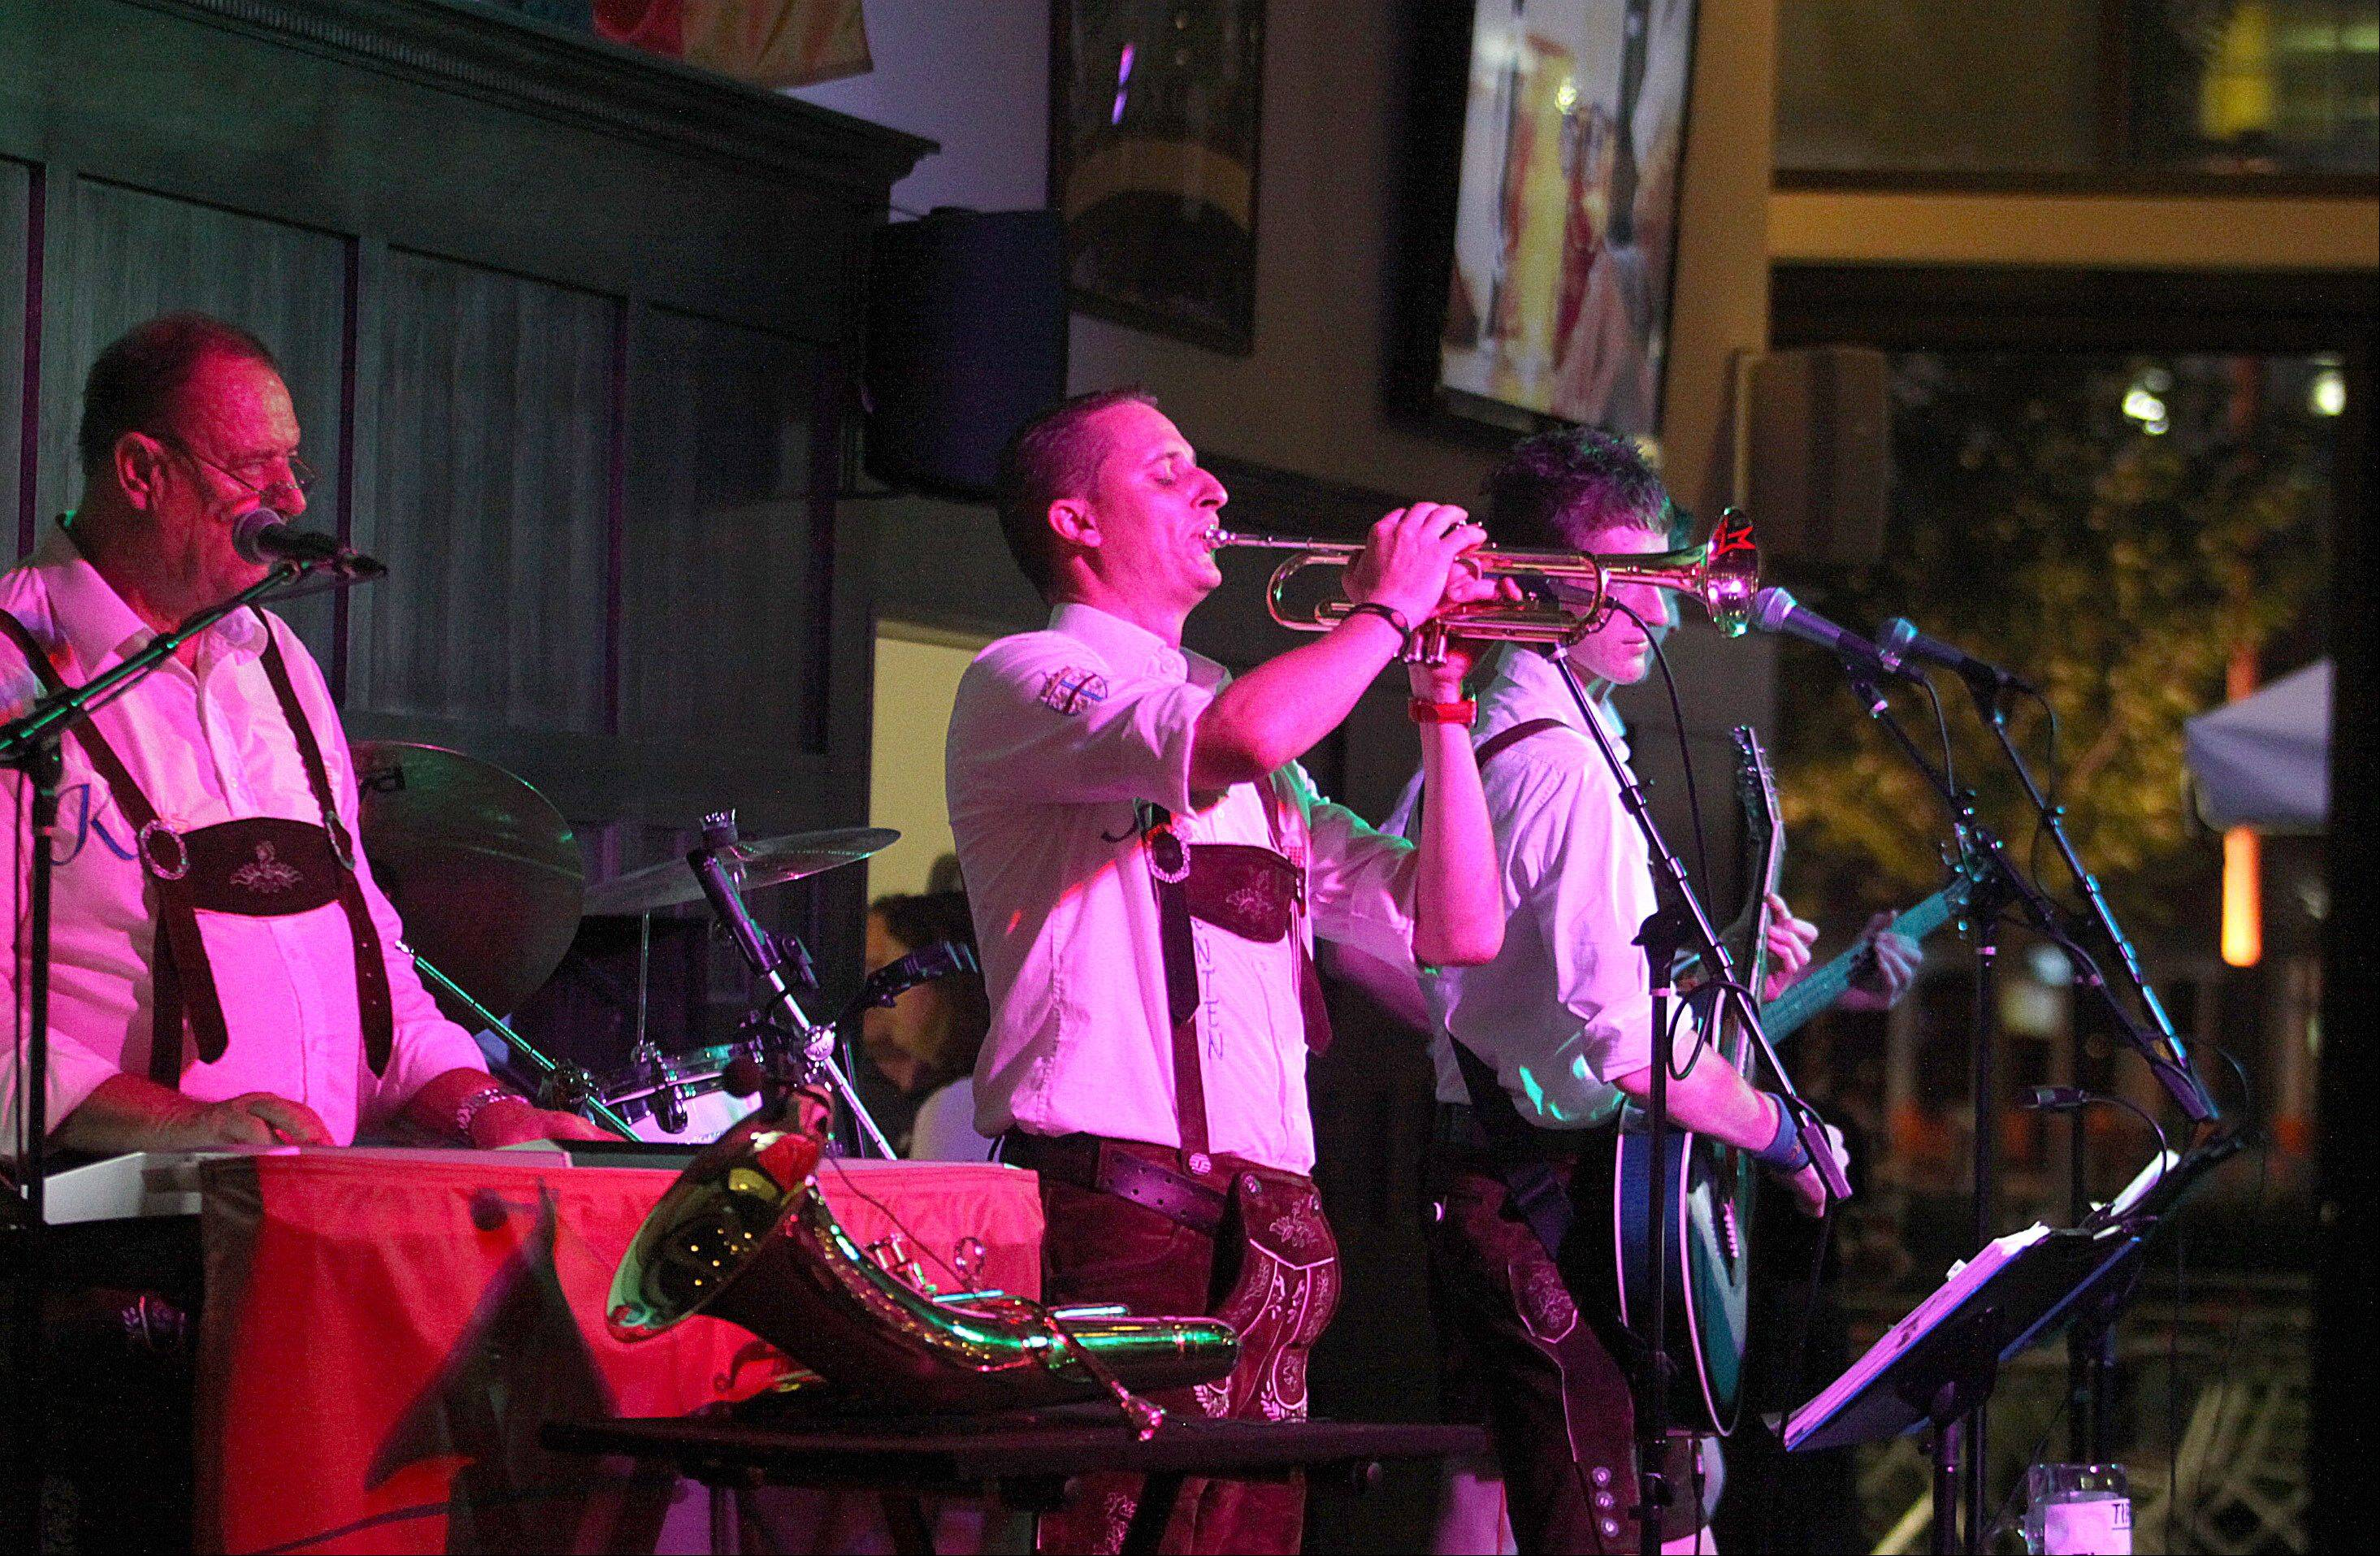 The Austrian band Carant entertains crowds at Hofbräuhaus Chicago.